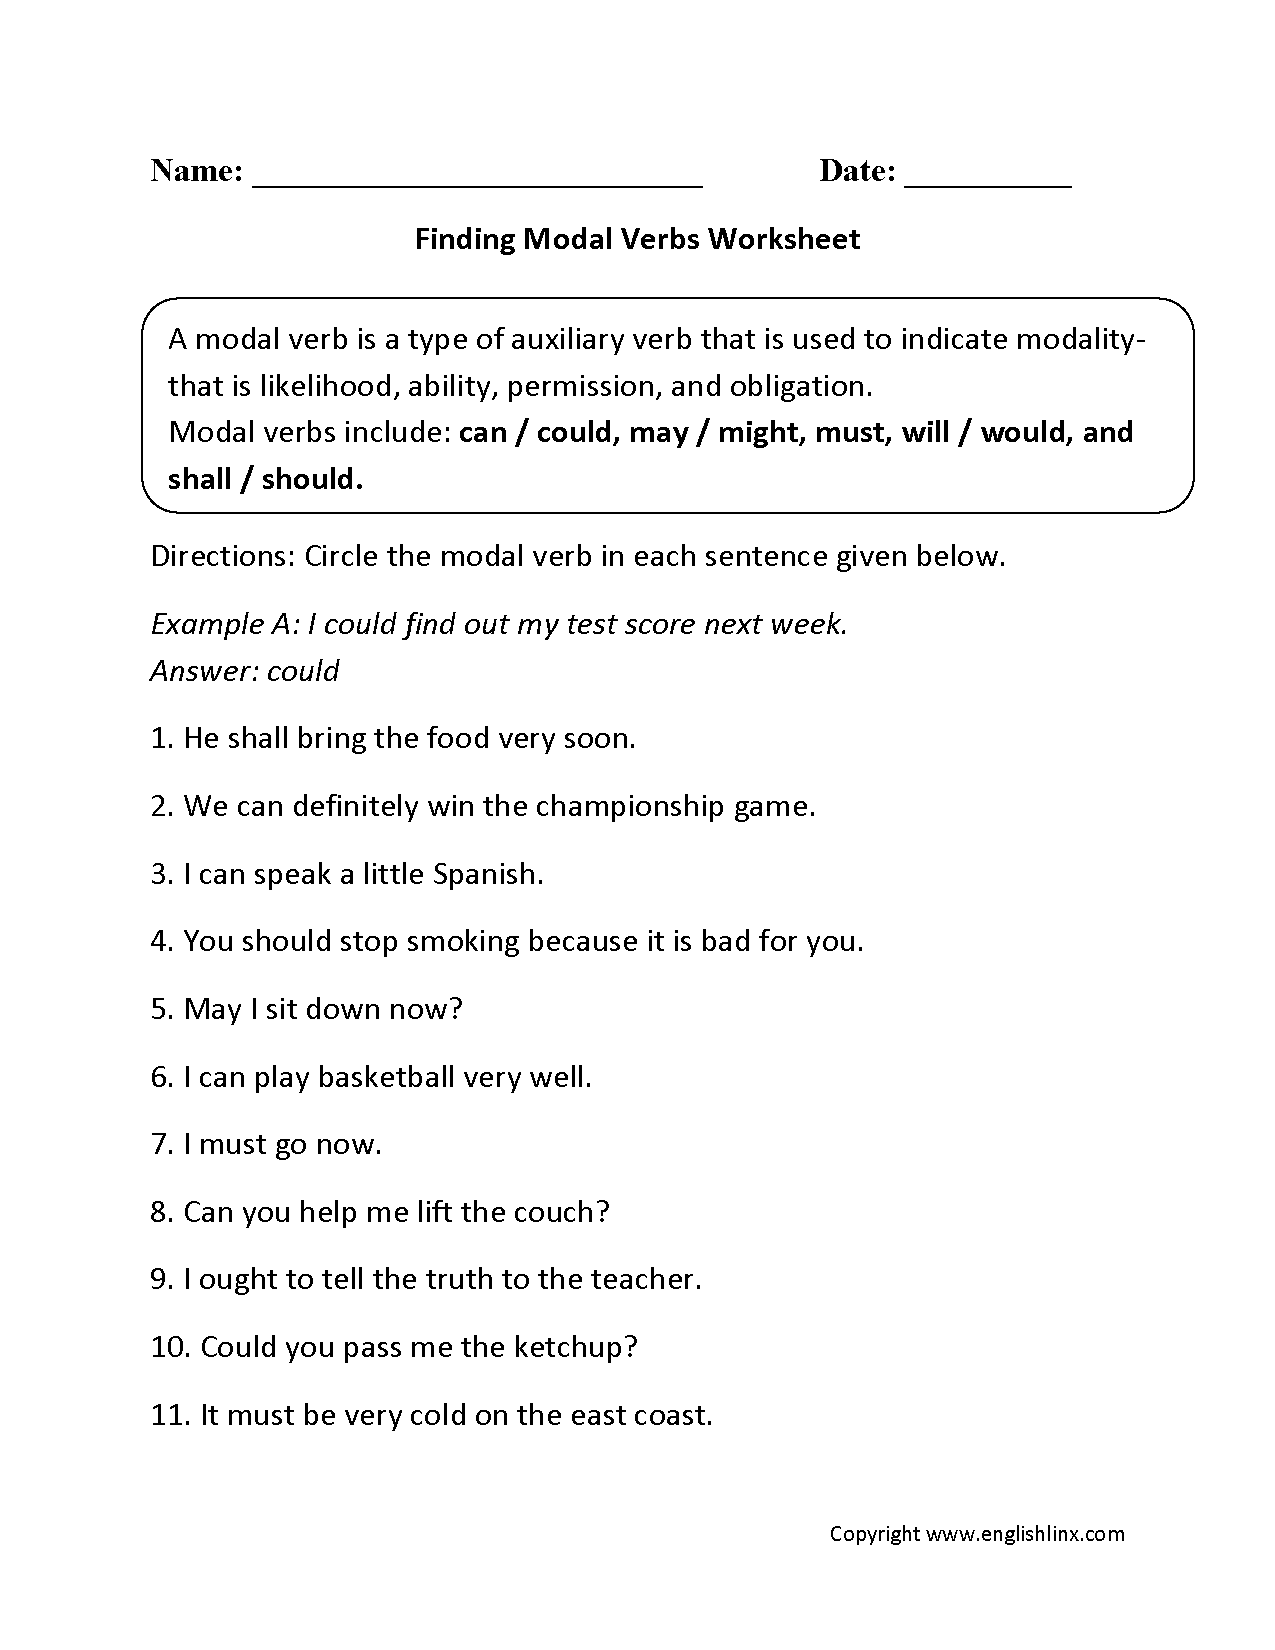 Modal Verbs Worksheets